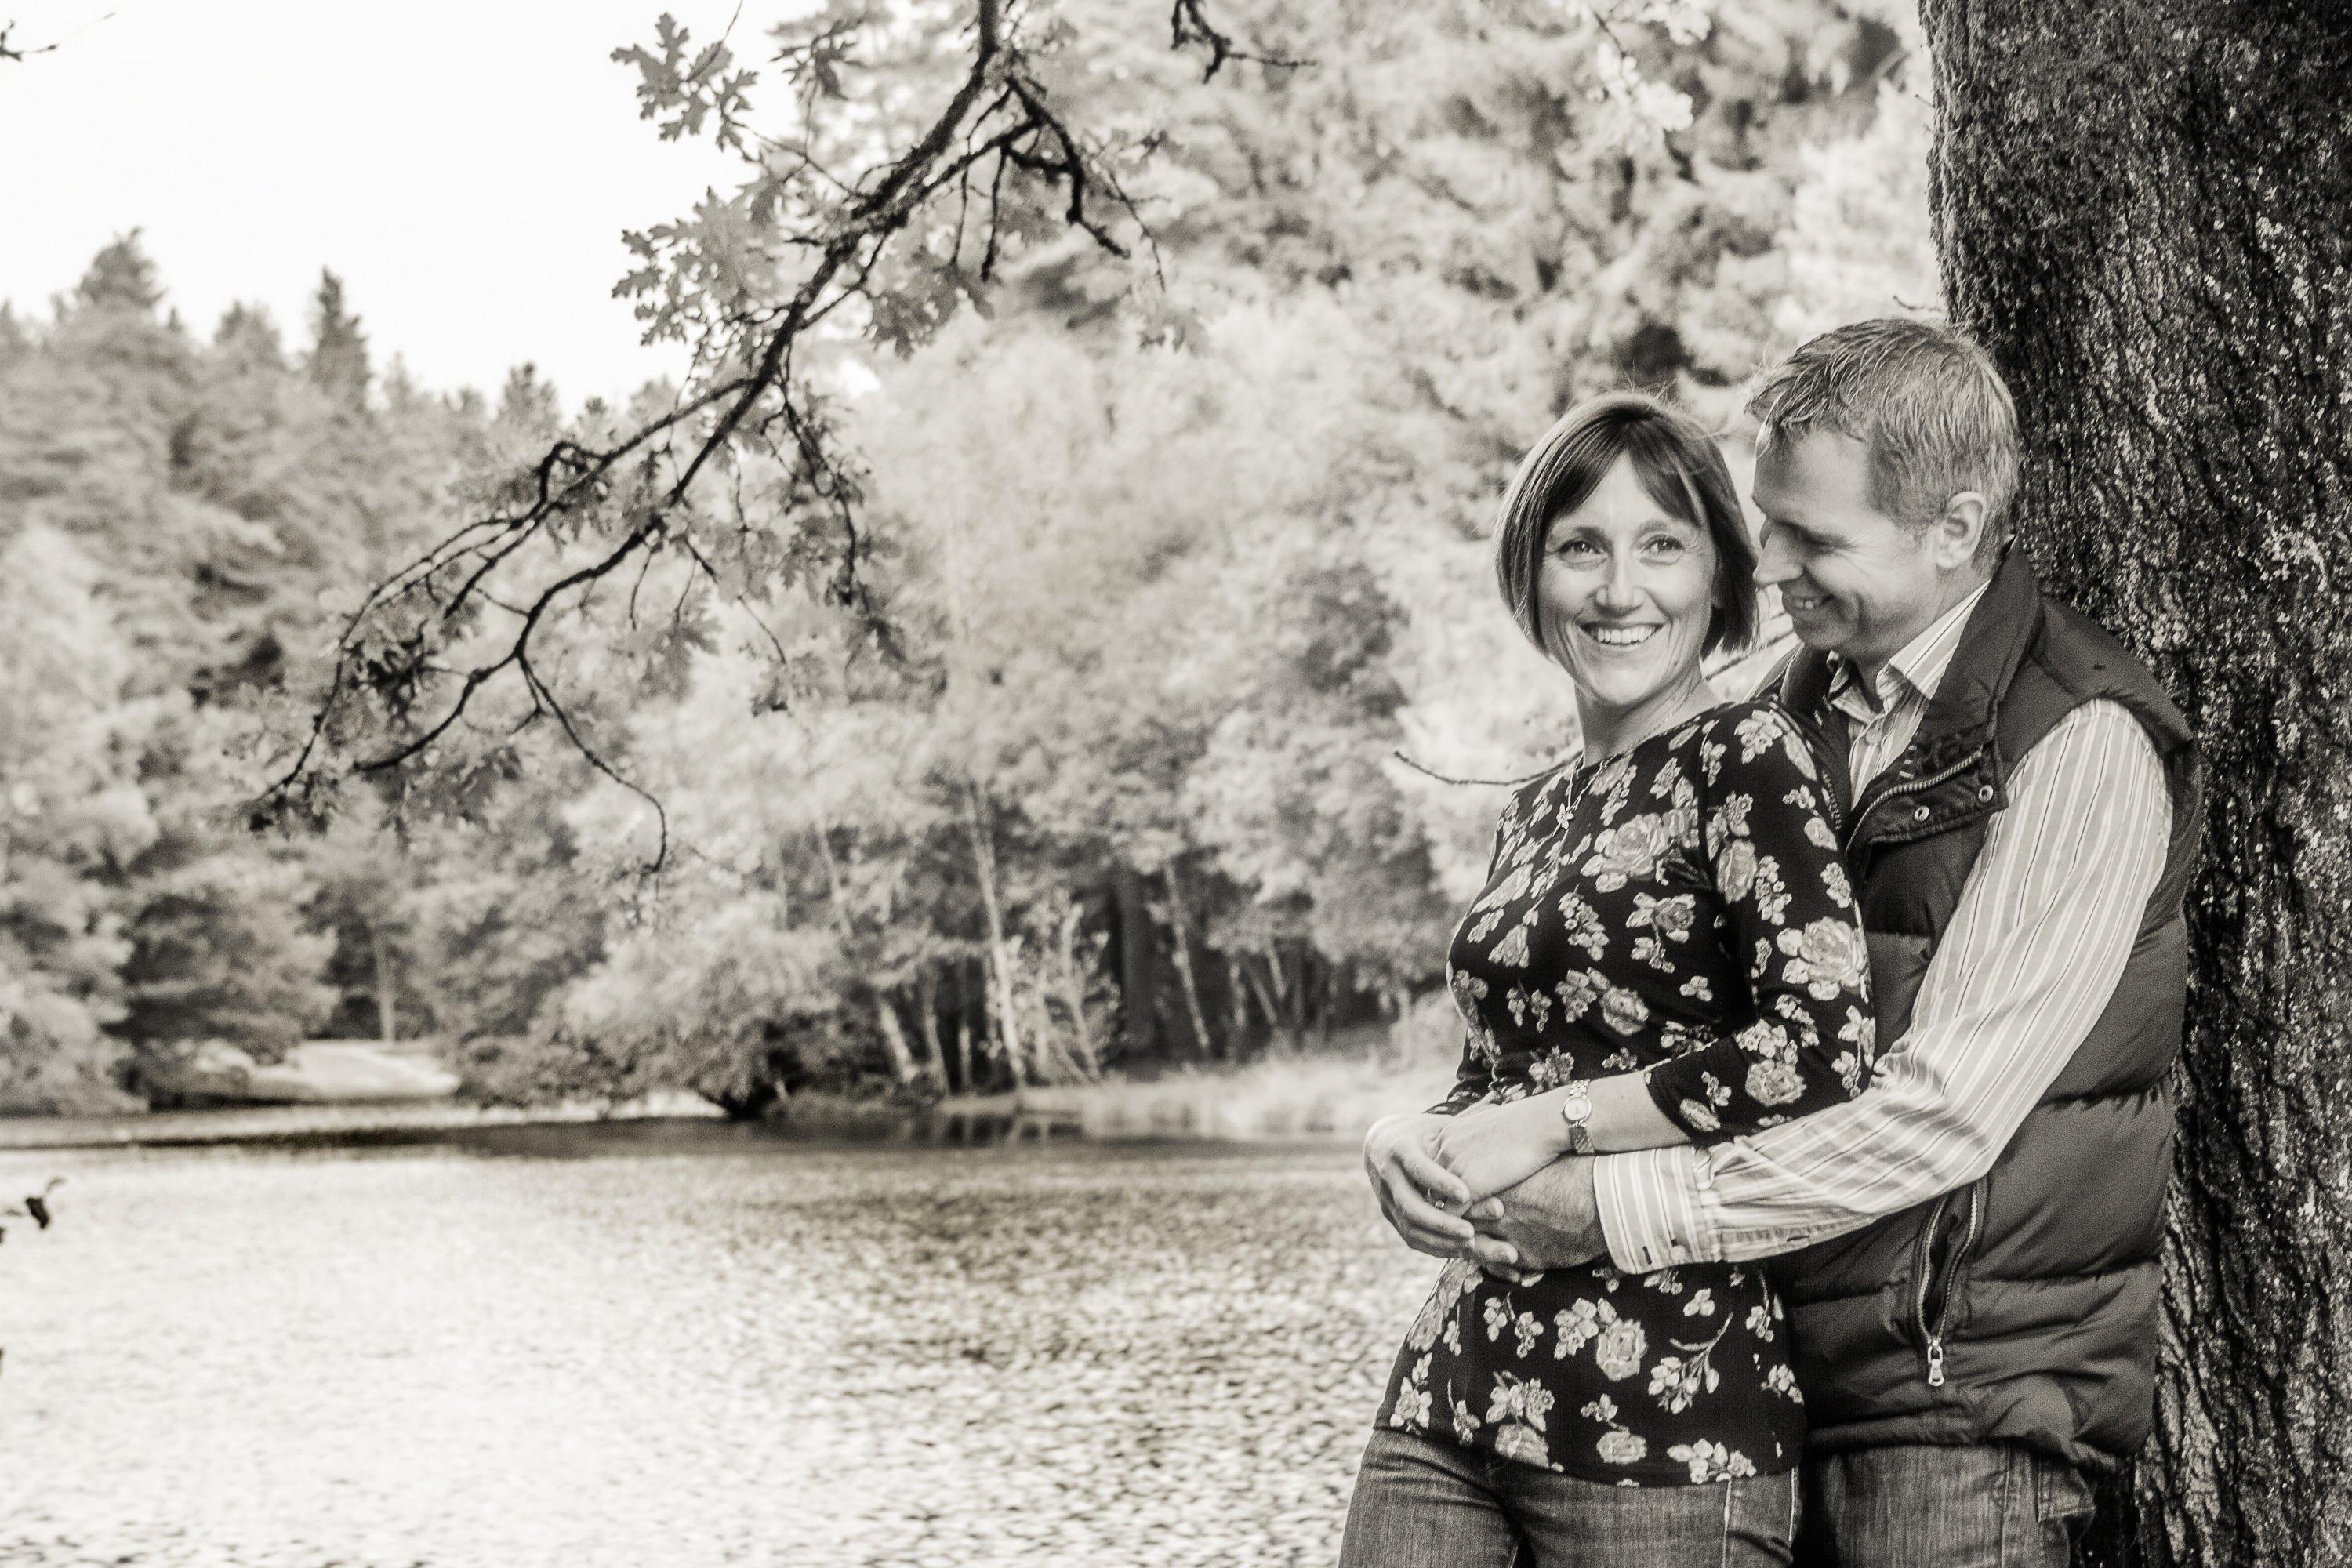 Sarah-Jane & Dave photographed by Andrew Davis photography close to the English and Welsh borders in The Forest of Dean on their pre wedding shoot.